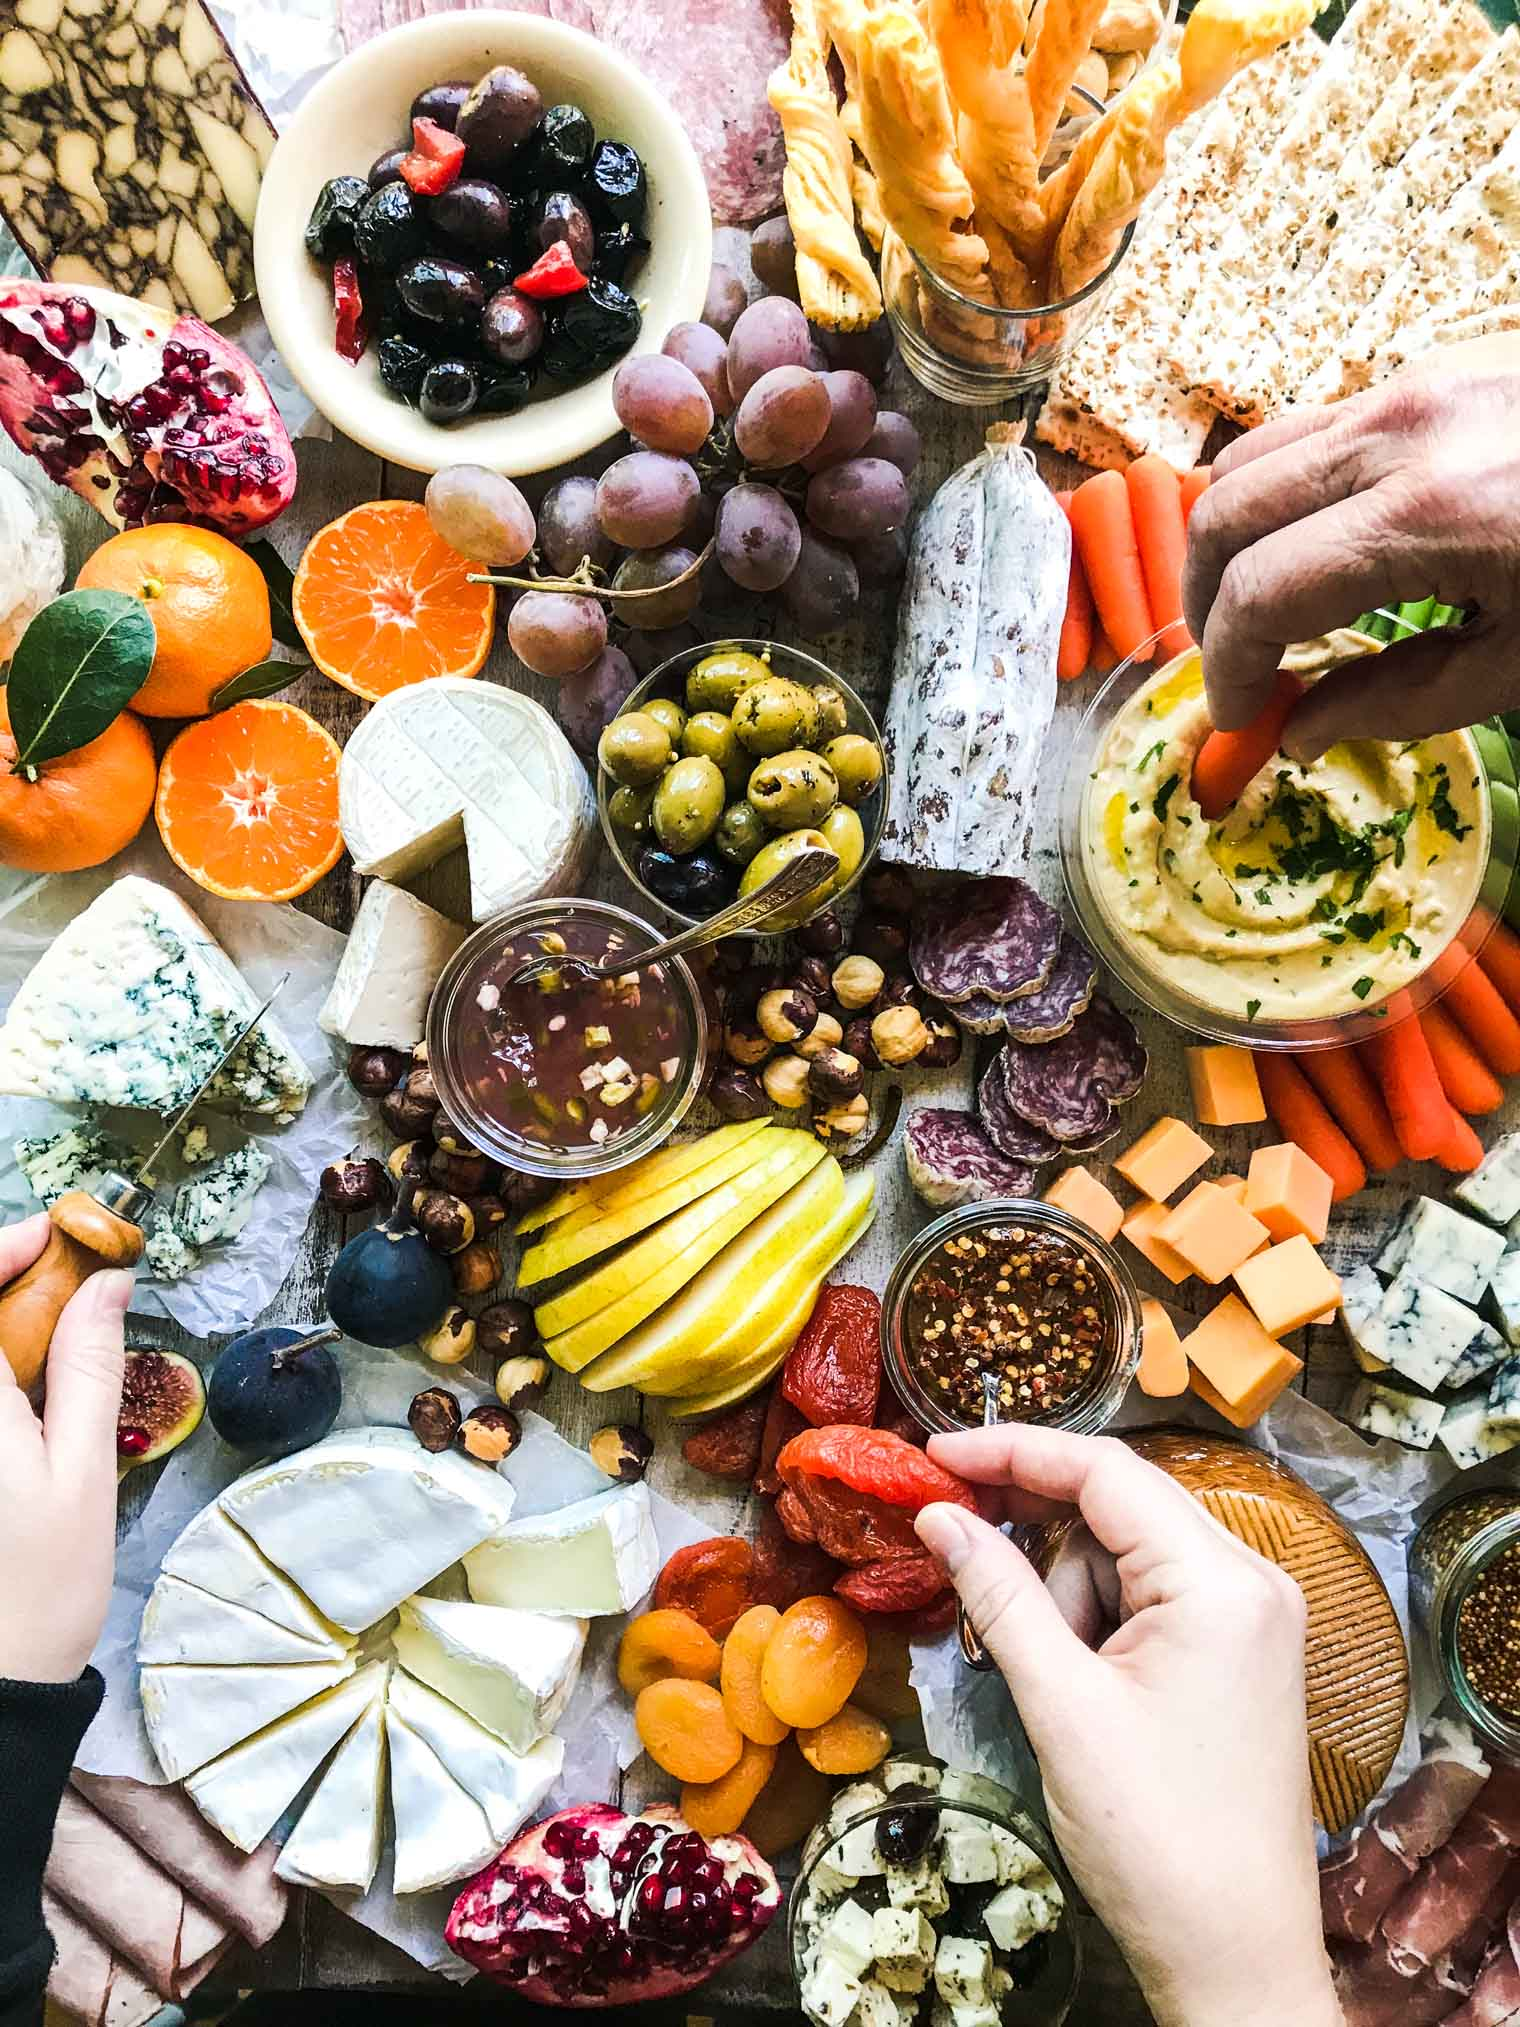 How to Make the Ultimate Cheeseboard with fruits, nuts, hummus, cheeses, meats, and more!